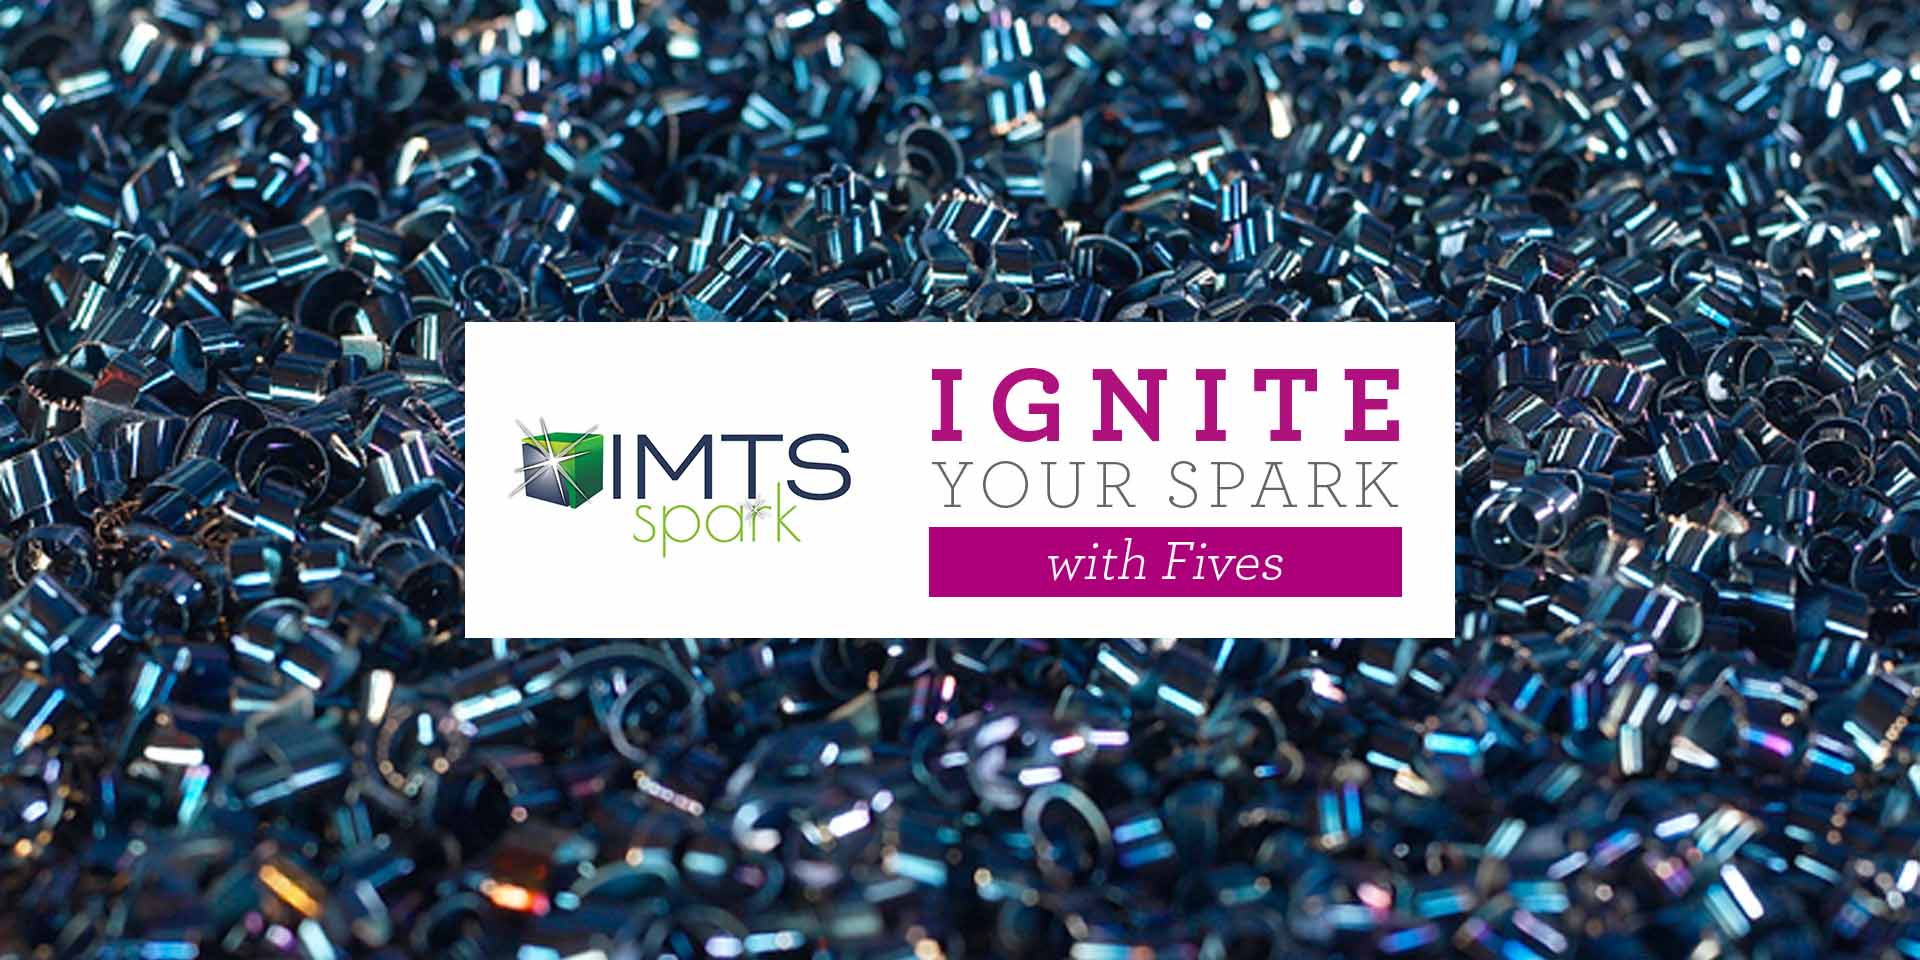 IMTS-Spark-news MCC 300-FIVES